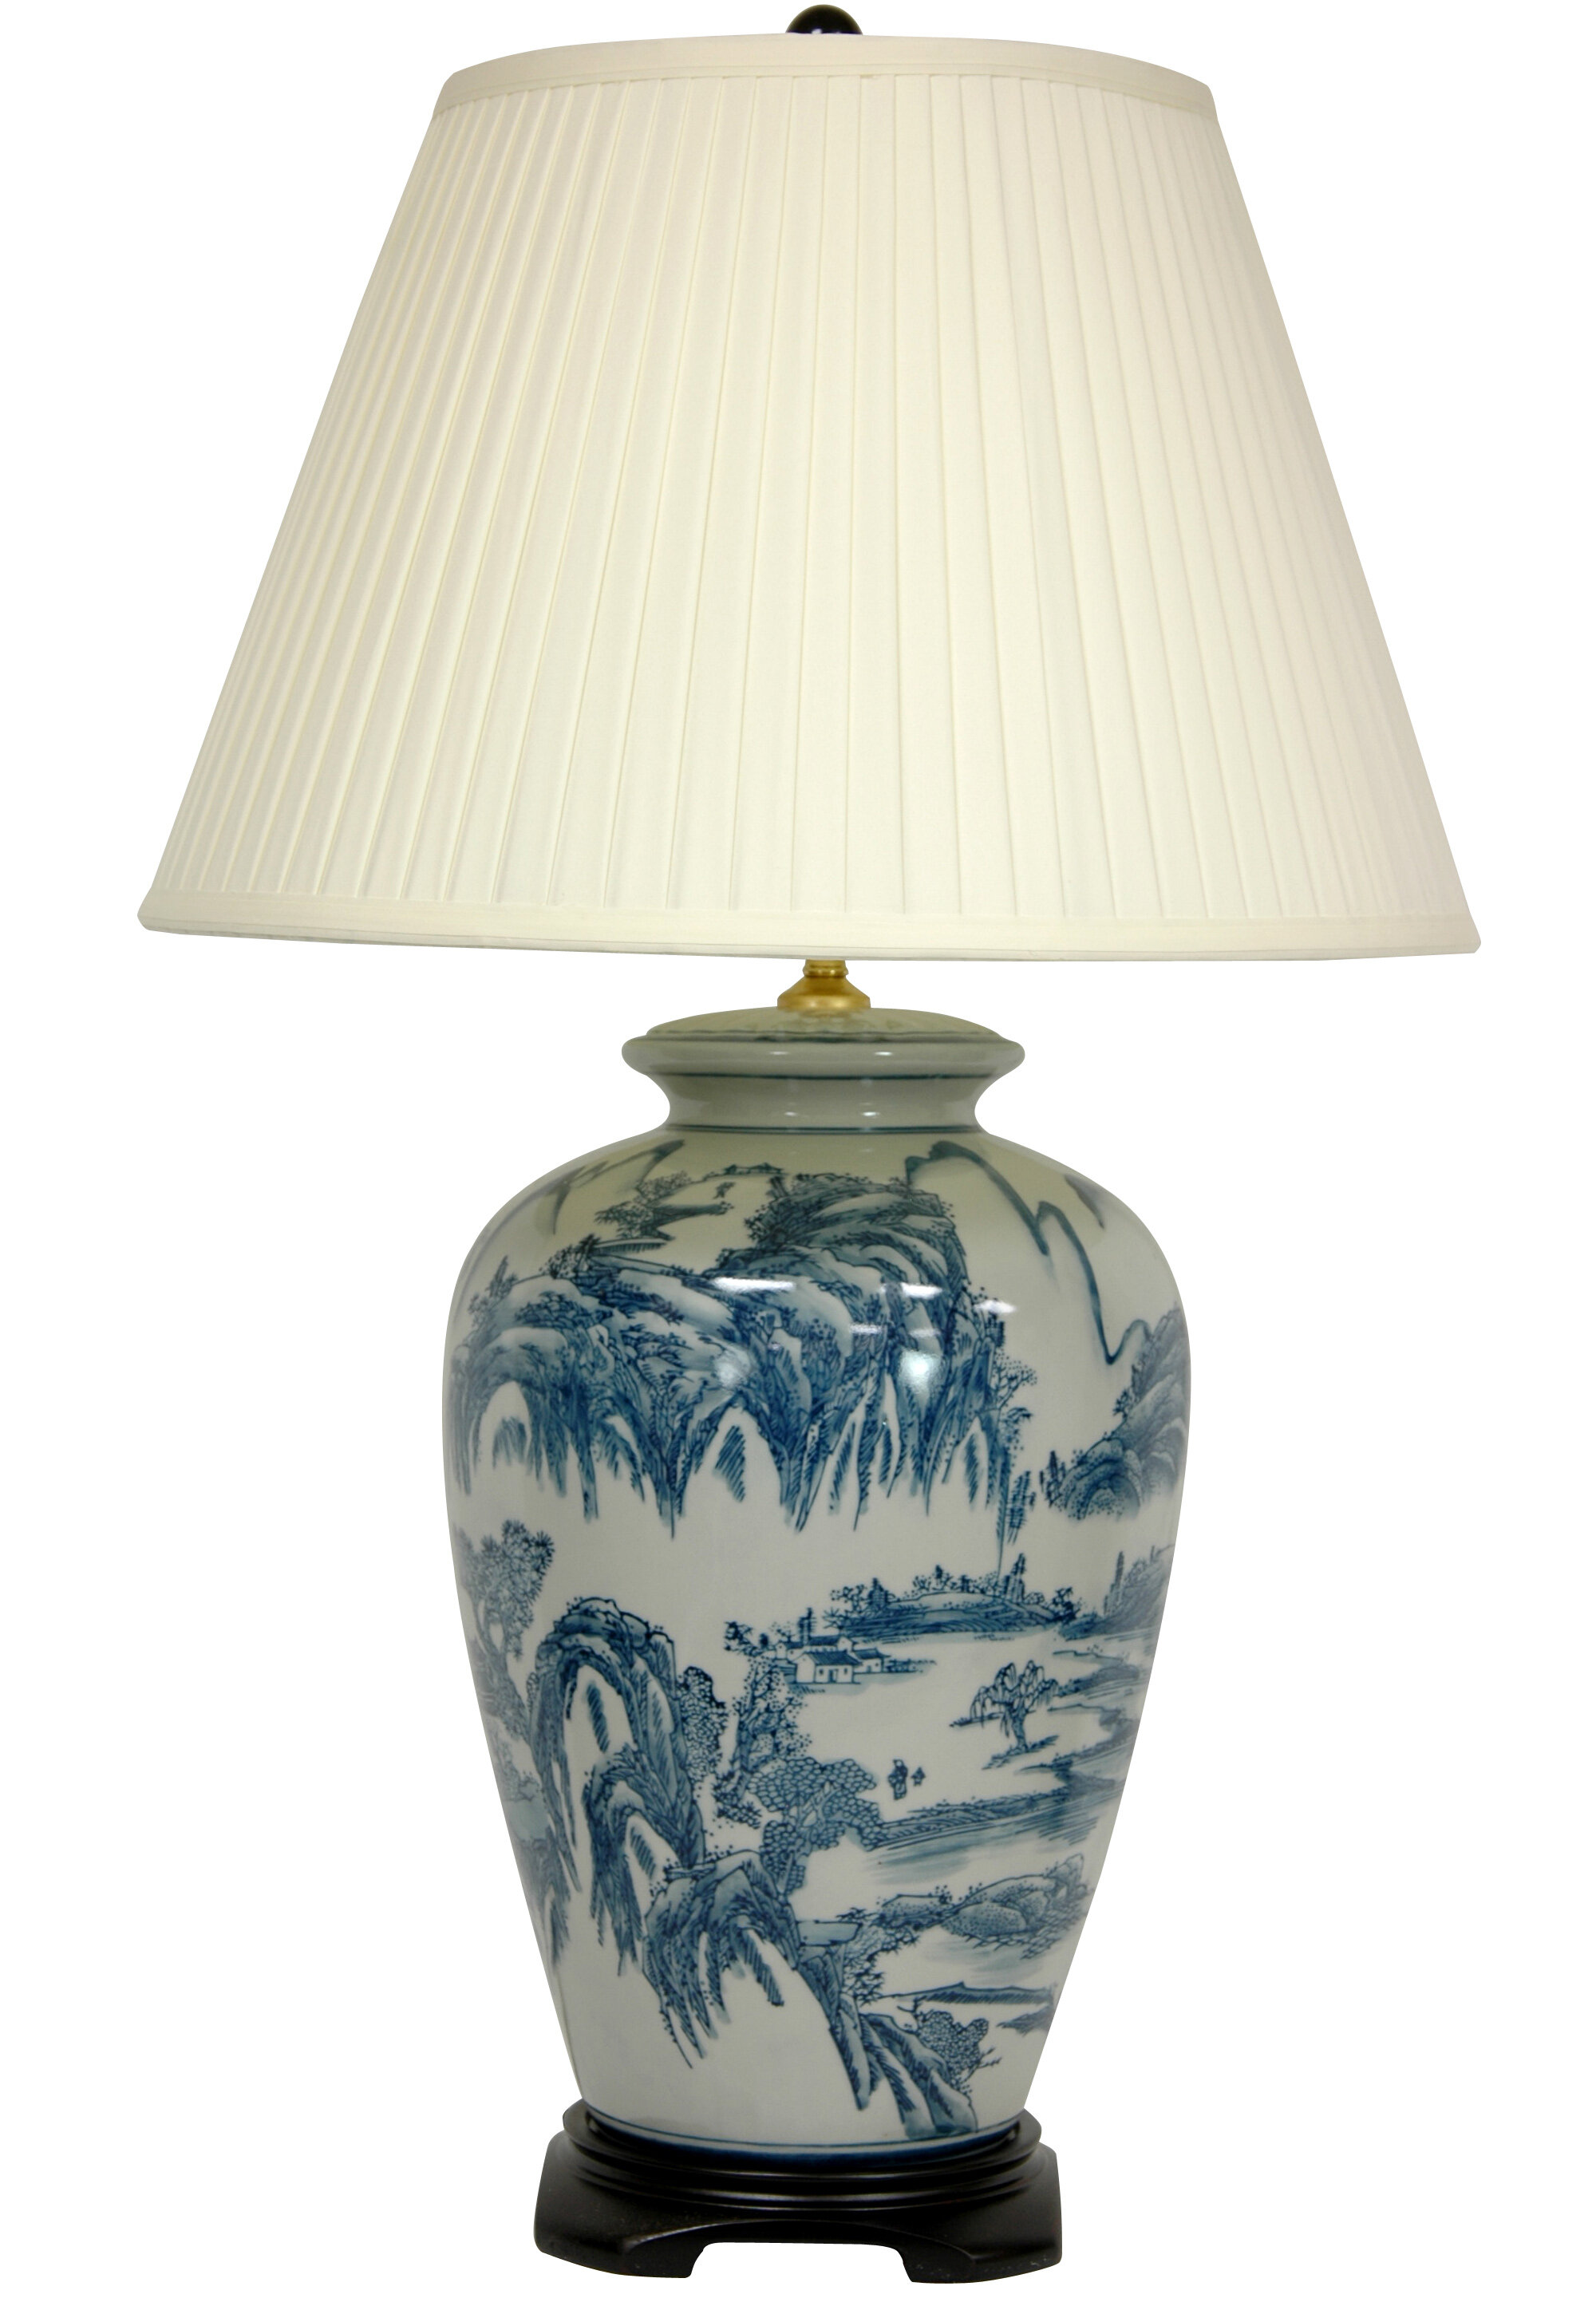 Oriental furniture chinese landscape oriental 29 table lamp oriental furniture chinese landscape oriental 29 table lamp reviews wayfair mozeypictures Choice Image